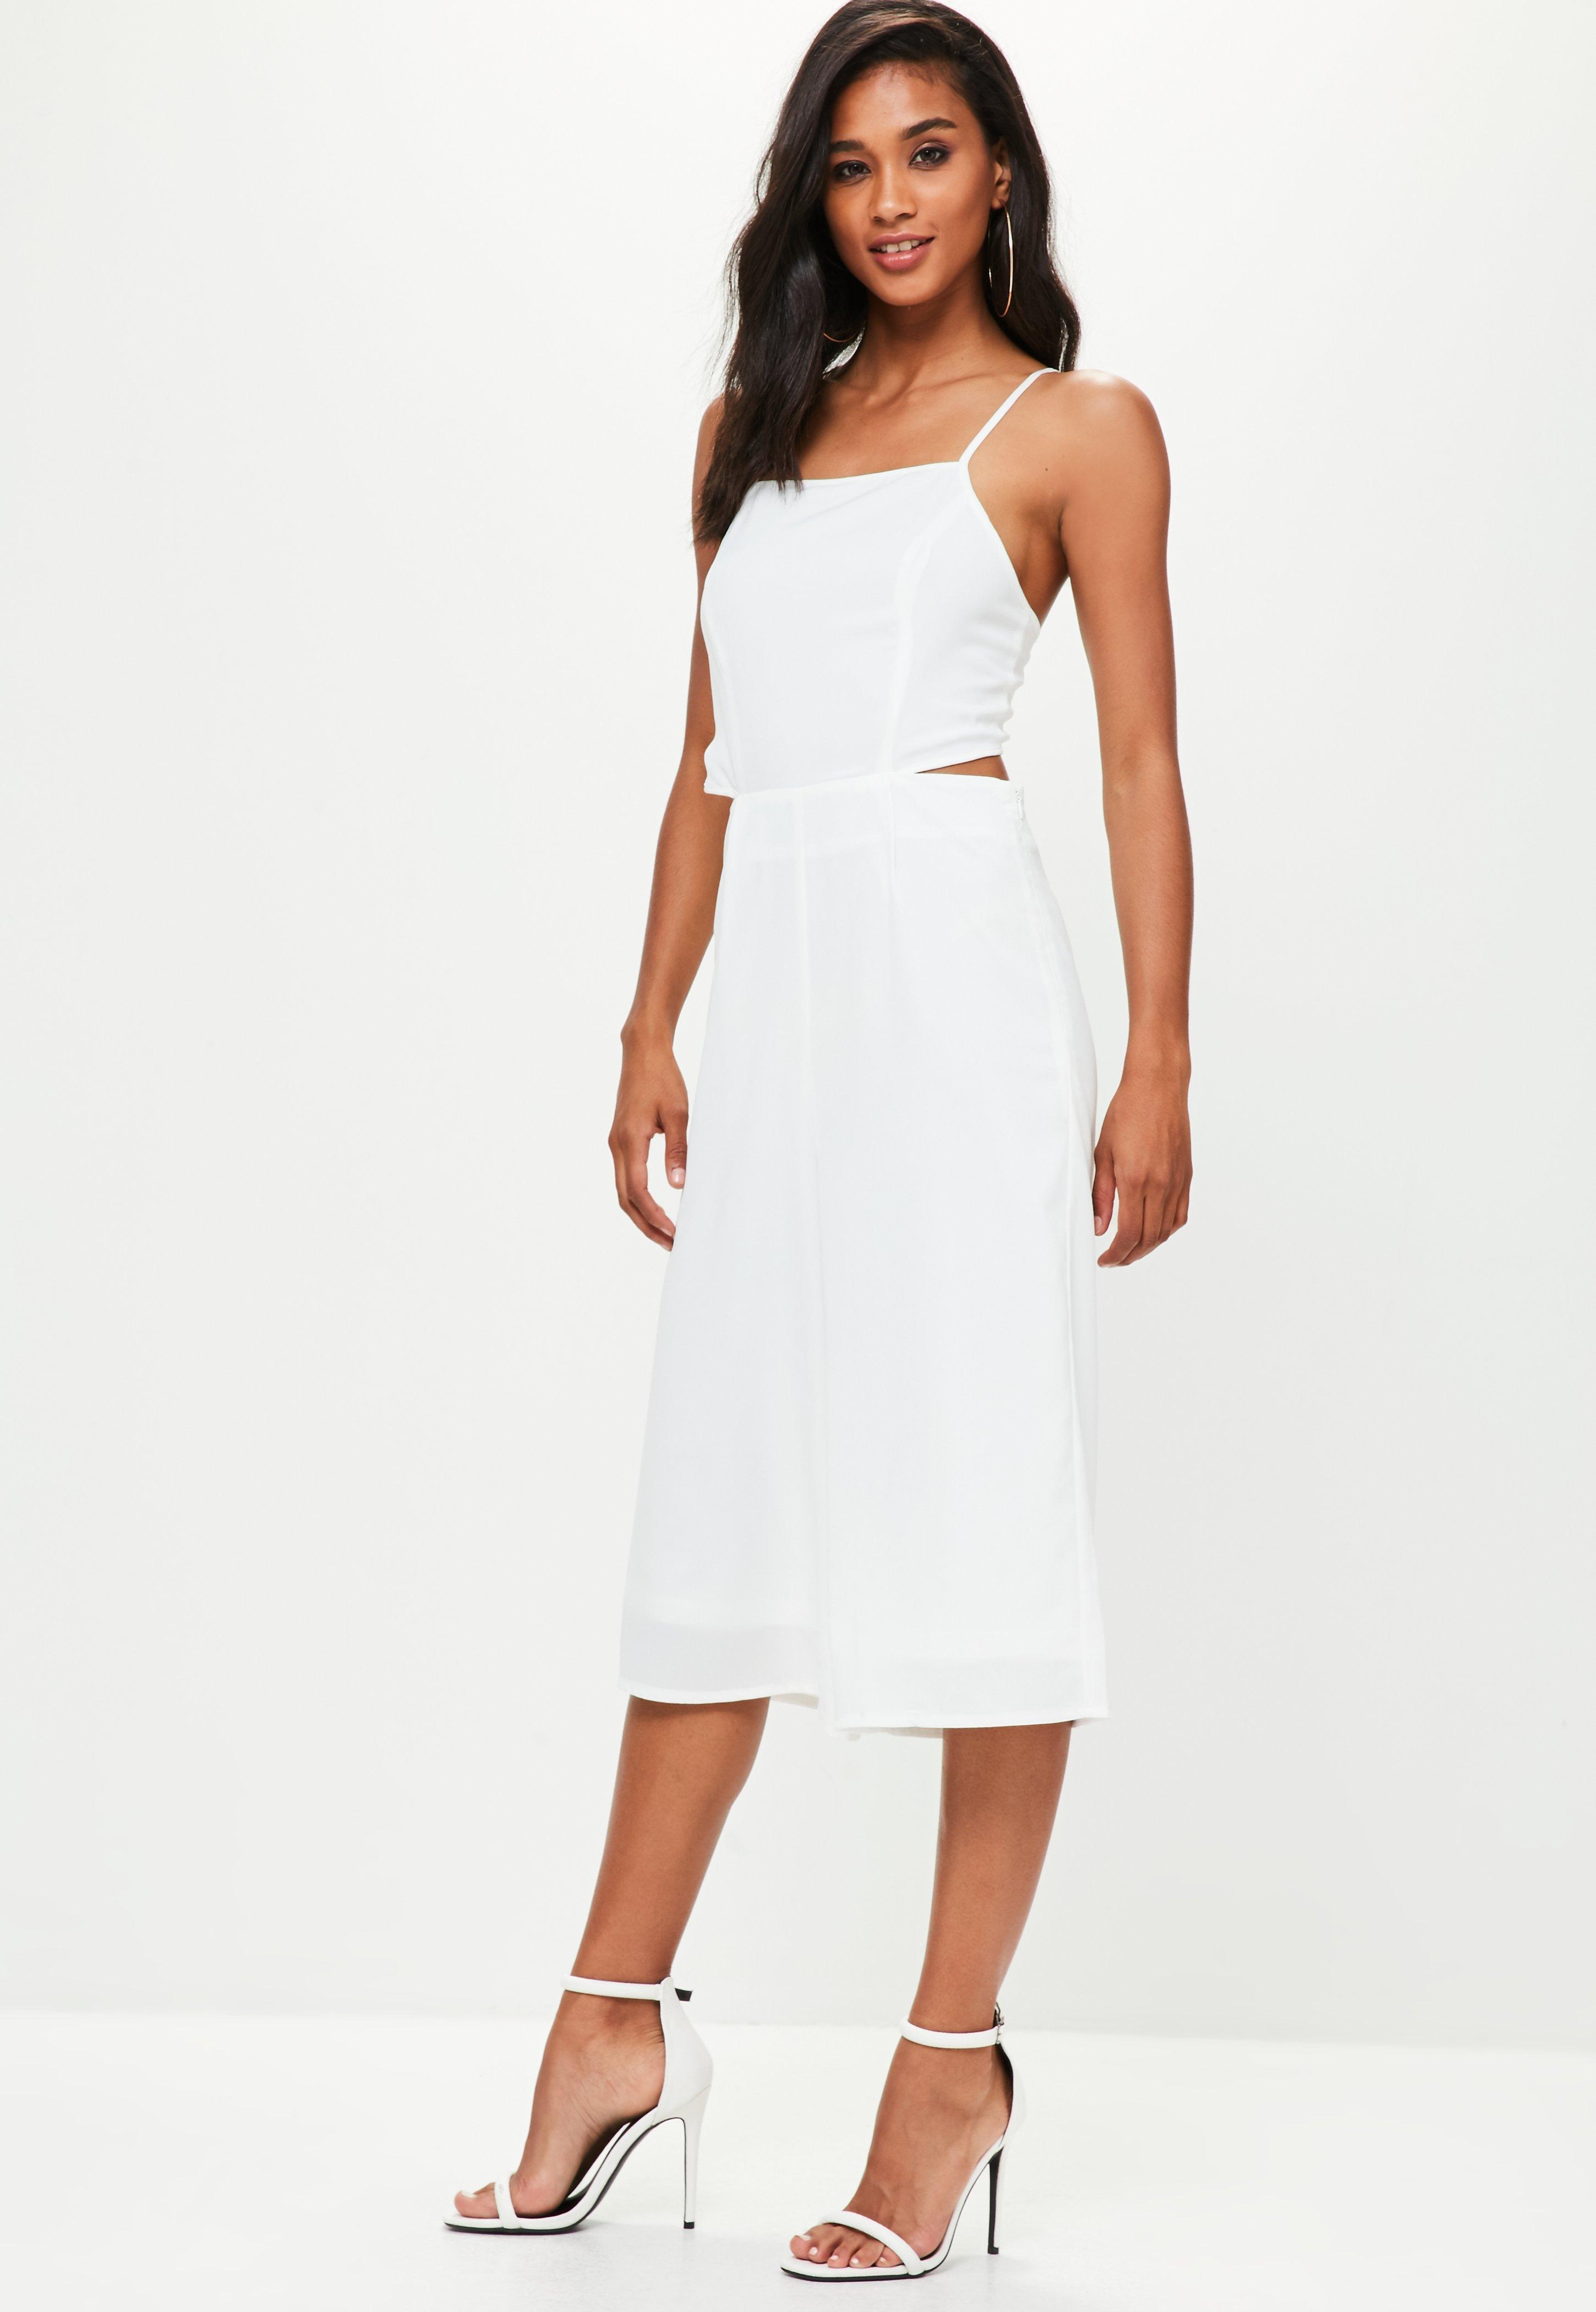 20d7c50149f5 Lyst - Missguided White Tie Back Culottes Jumpsuit in White